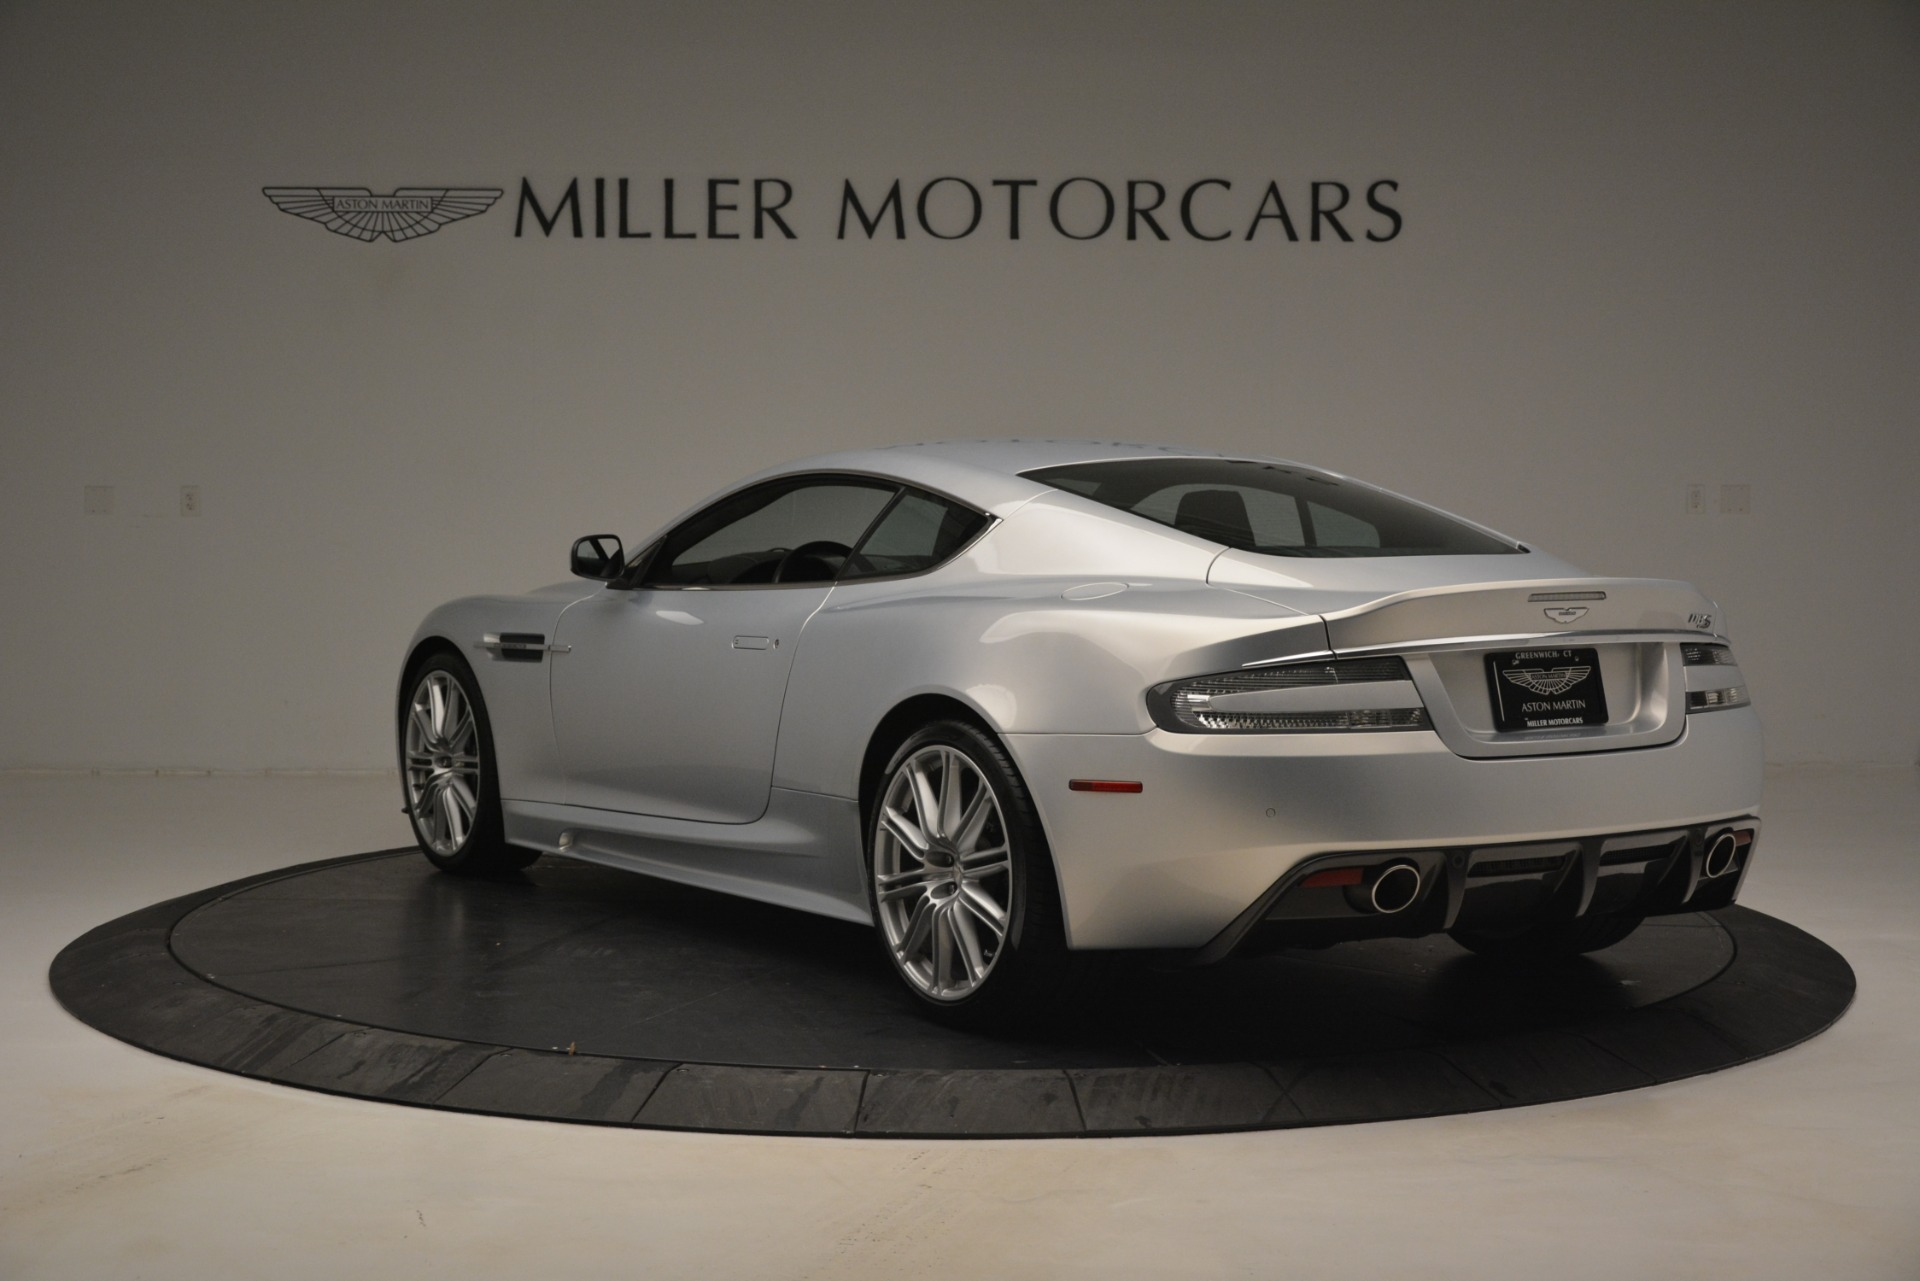 Used 2009 Aston Martin DBS Coupe For Sale In Greenwich, CT 3033_p5